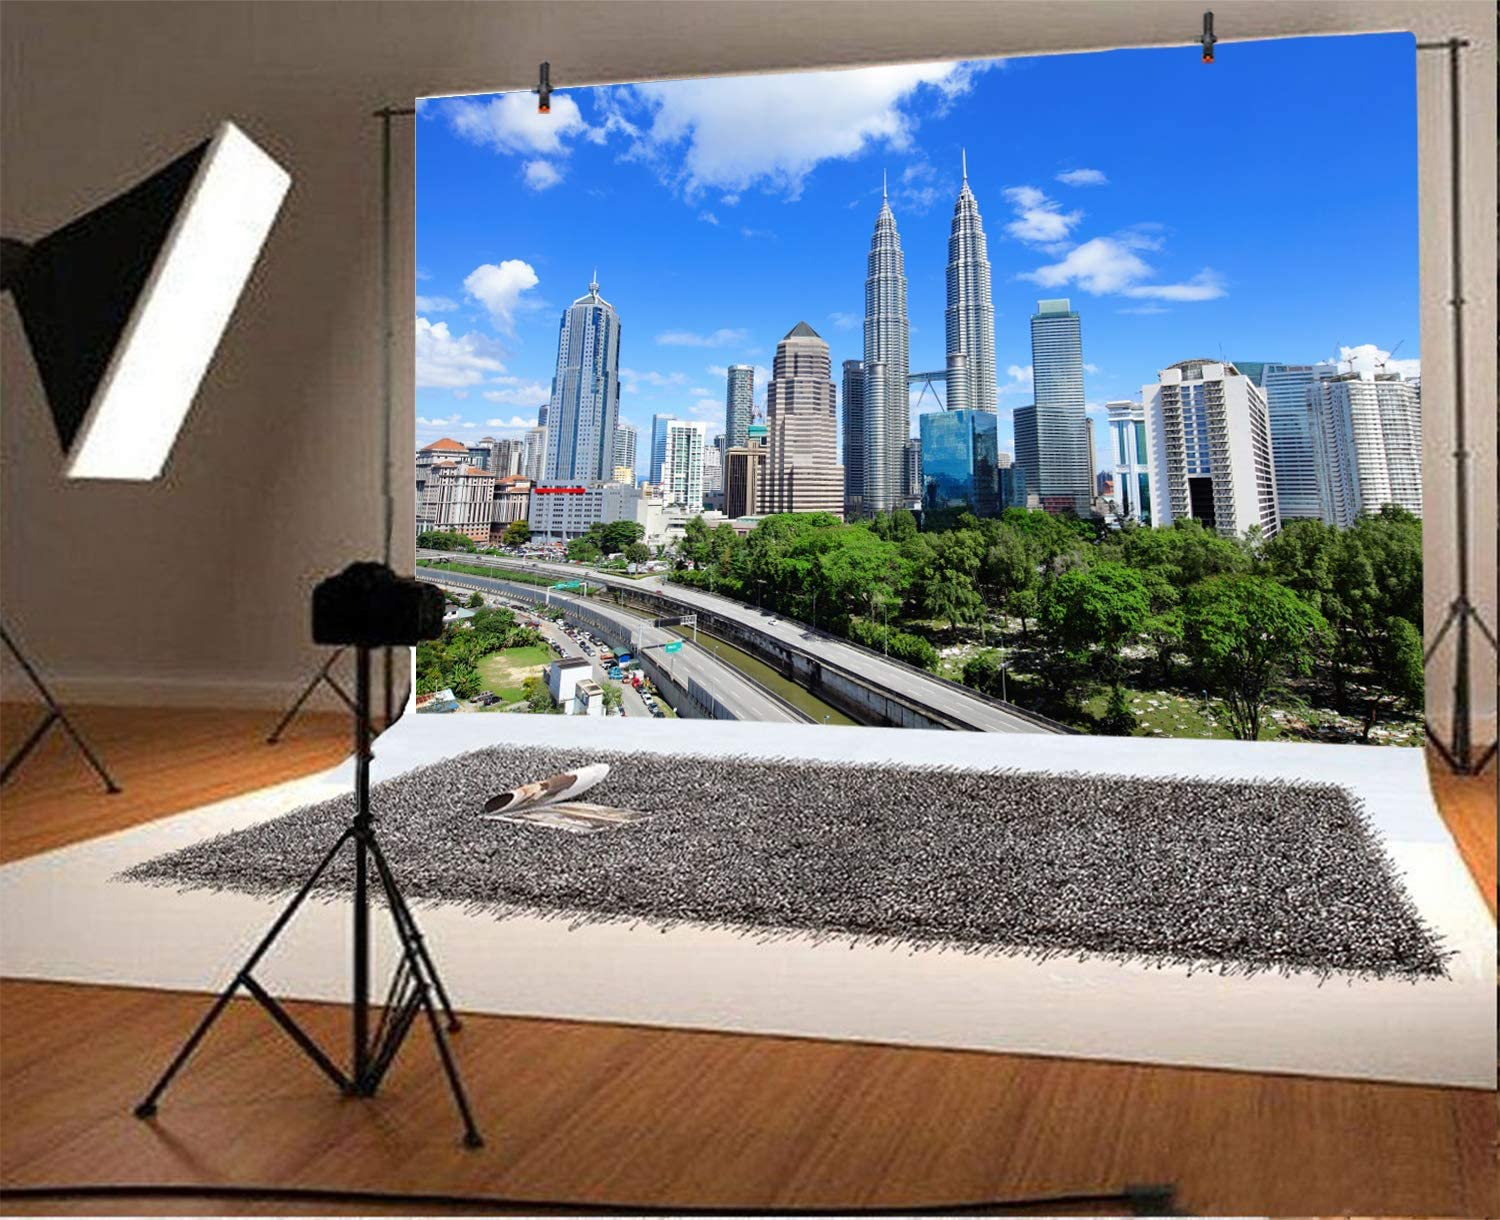 LFEEY 7x5ft Kuala Lumpur Skyline Backdrop Polyester Photography Background Modern City Many-storied Buildings Indoor Decors Wallpaper Holiday Party Backdrop Photo Studio No Wrinkle